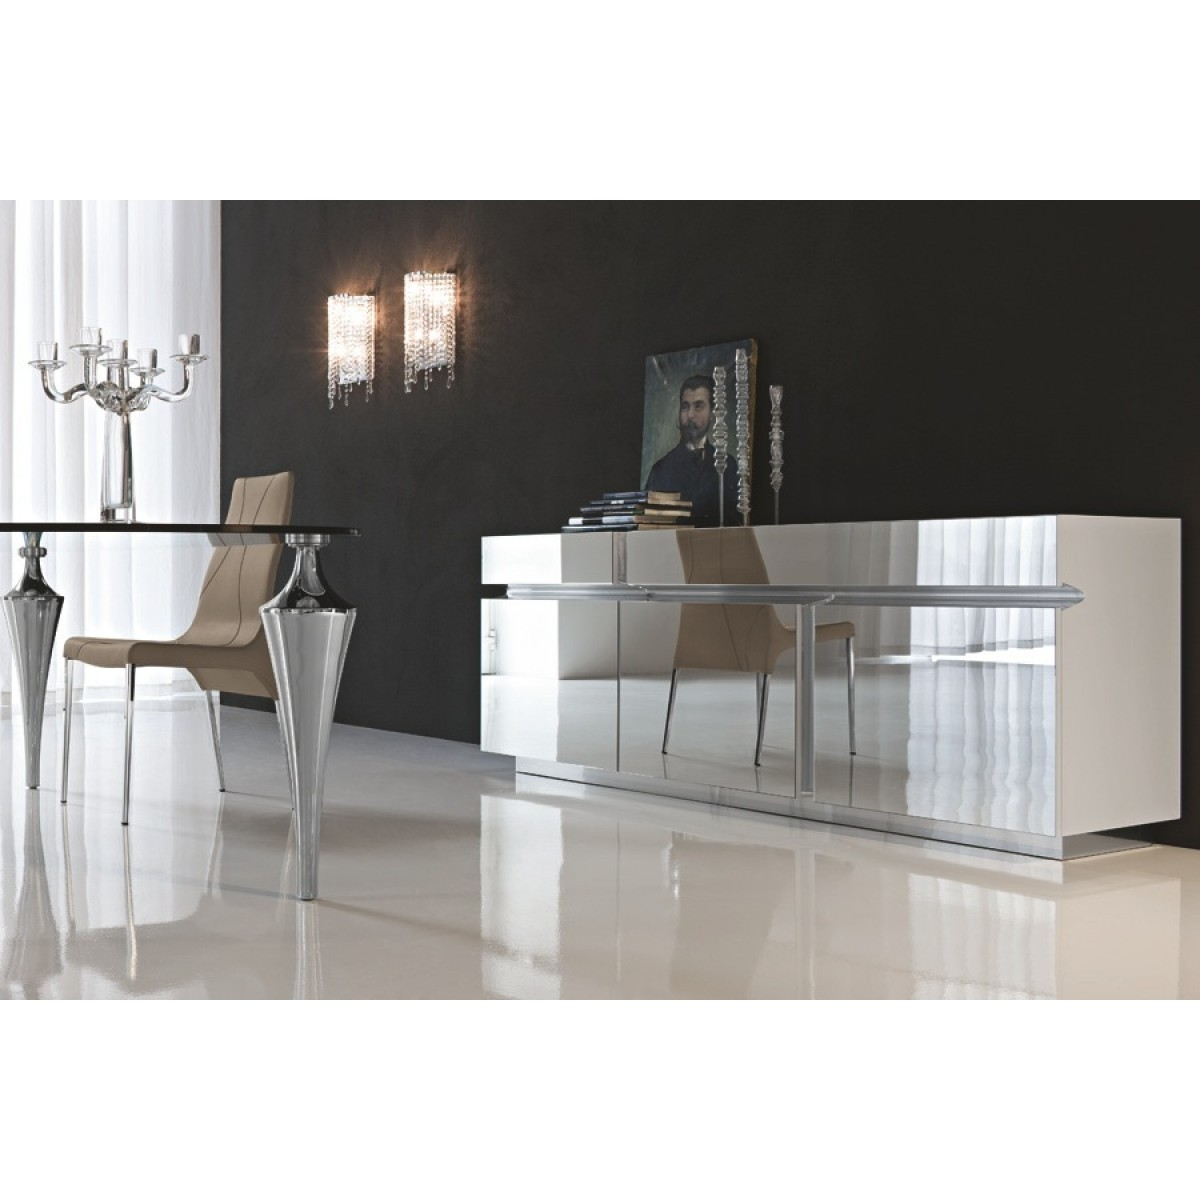 Admirable mirrored sideboard with knobs silver color and with decorative pattern design mirrored sideboard ideas